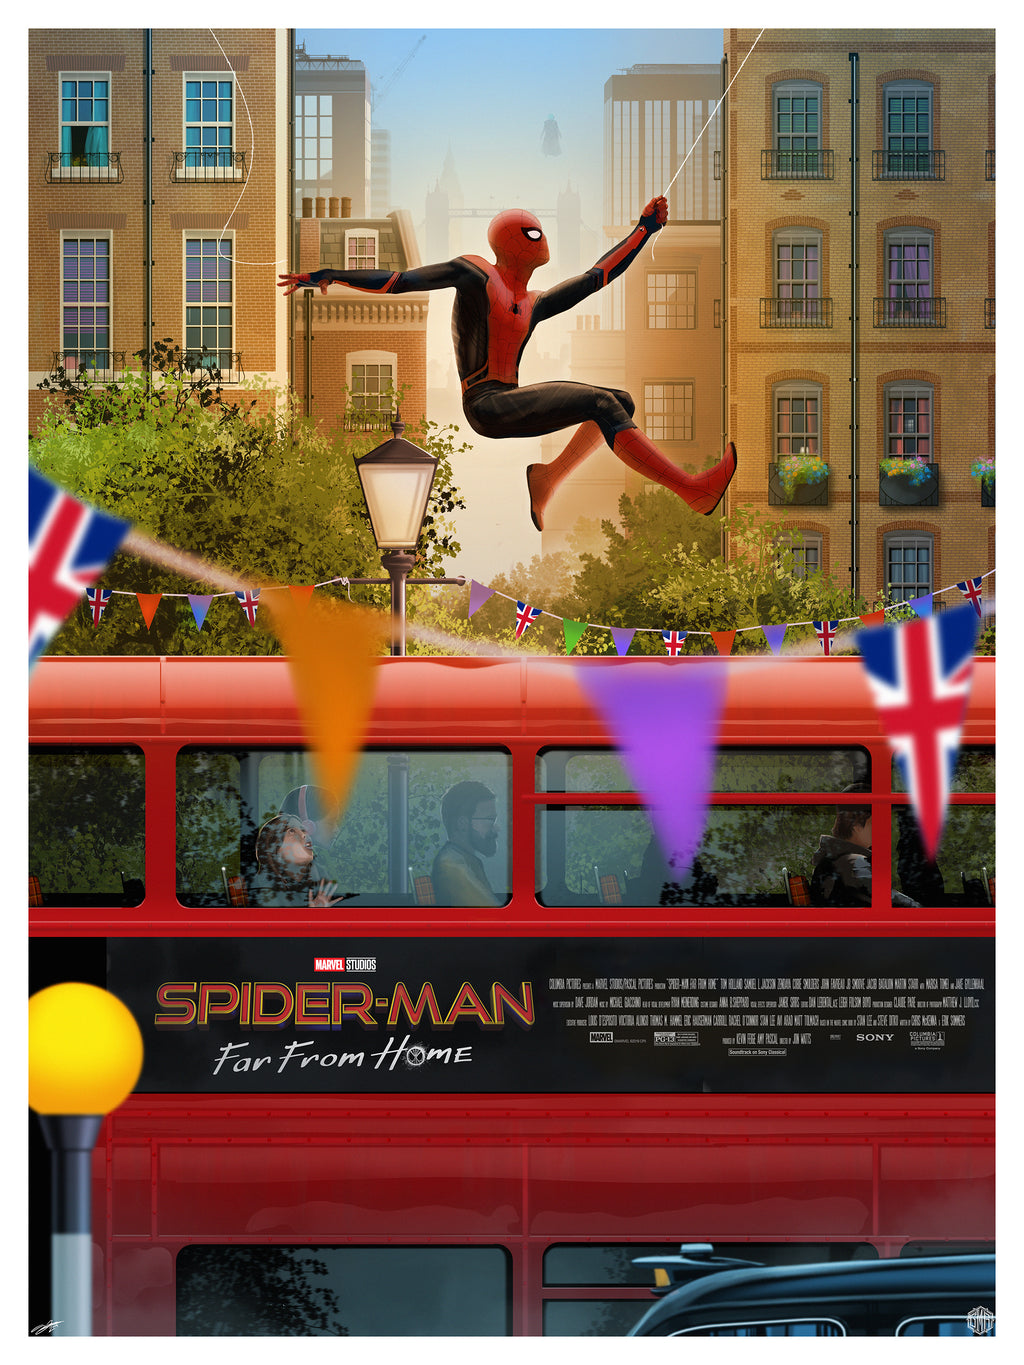 """Spider-Man: Far from Home"" by Andy Fairhurst"